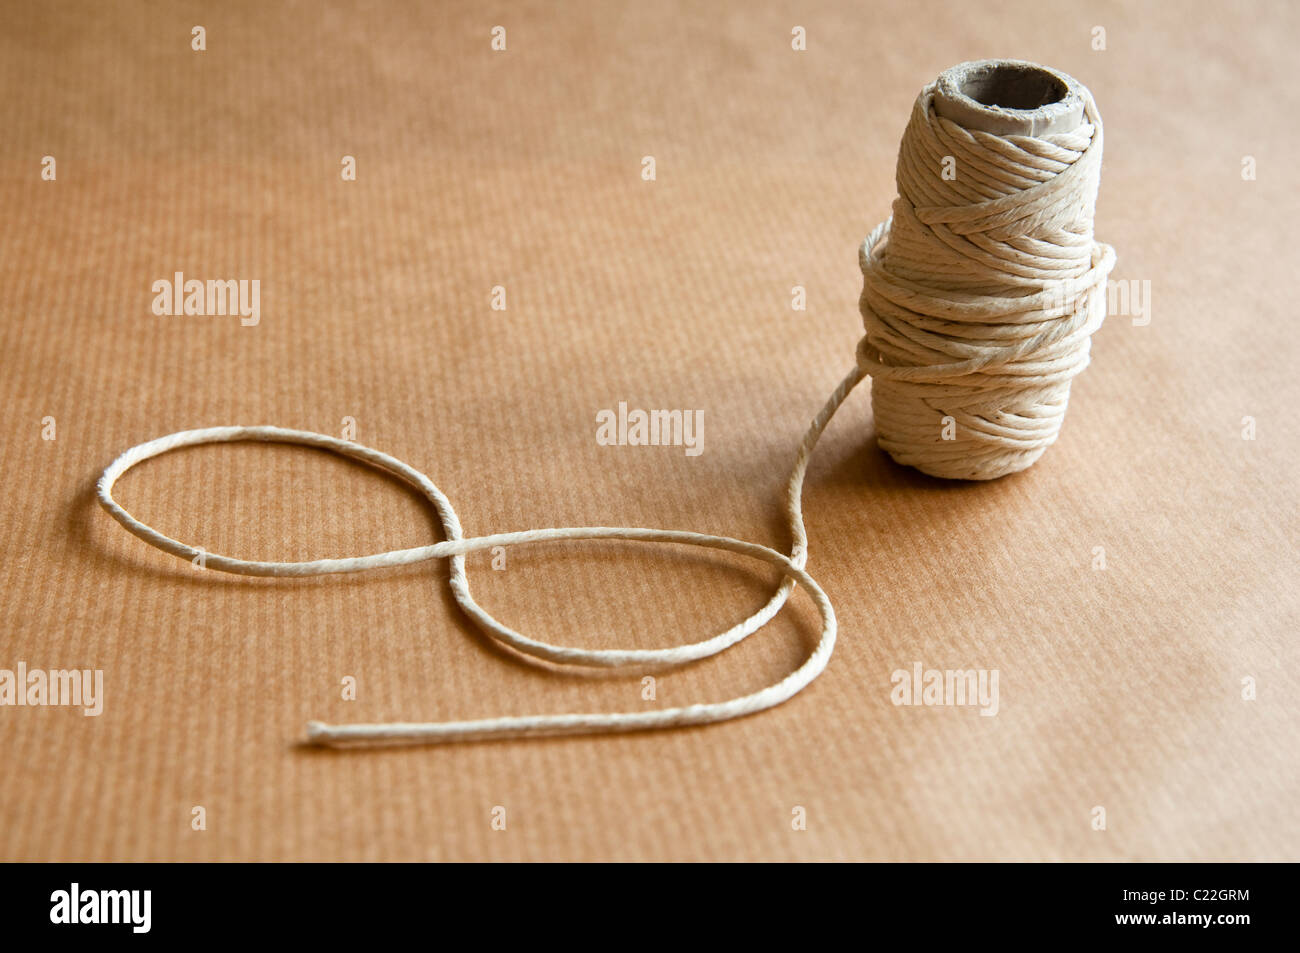 String on Brown Paper. - Stock Image